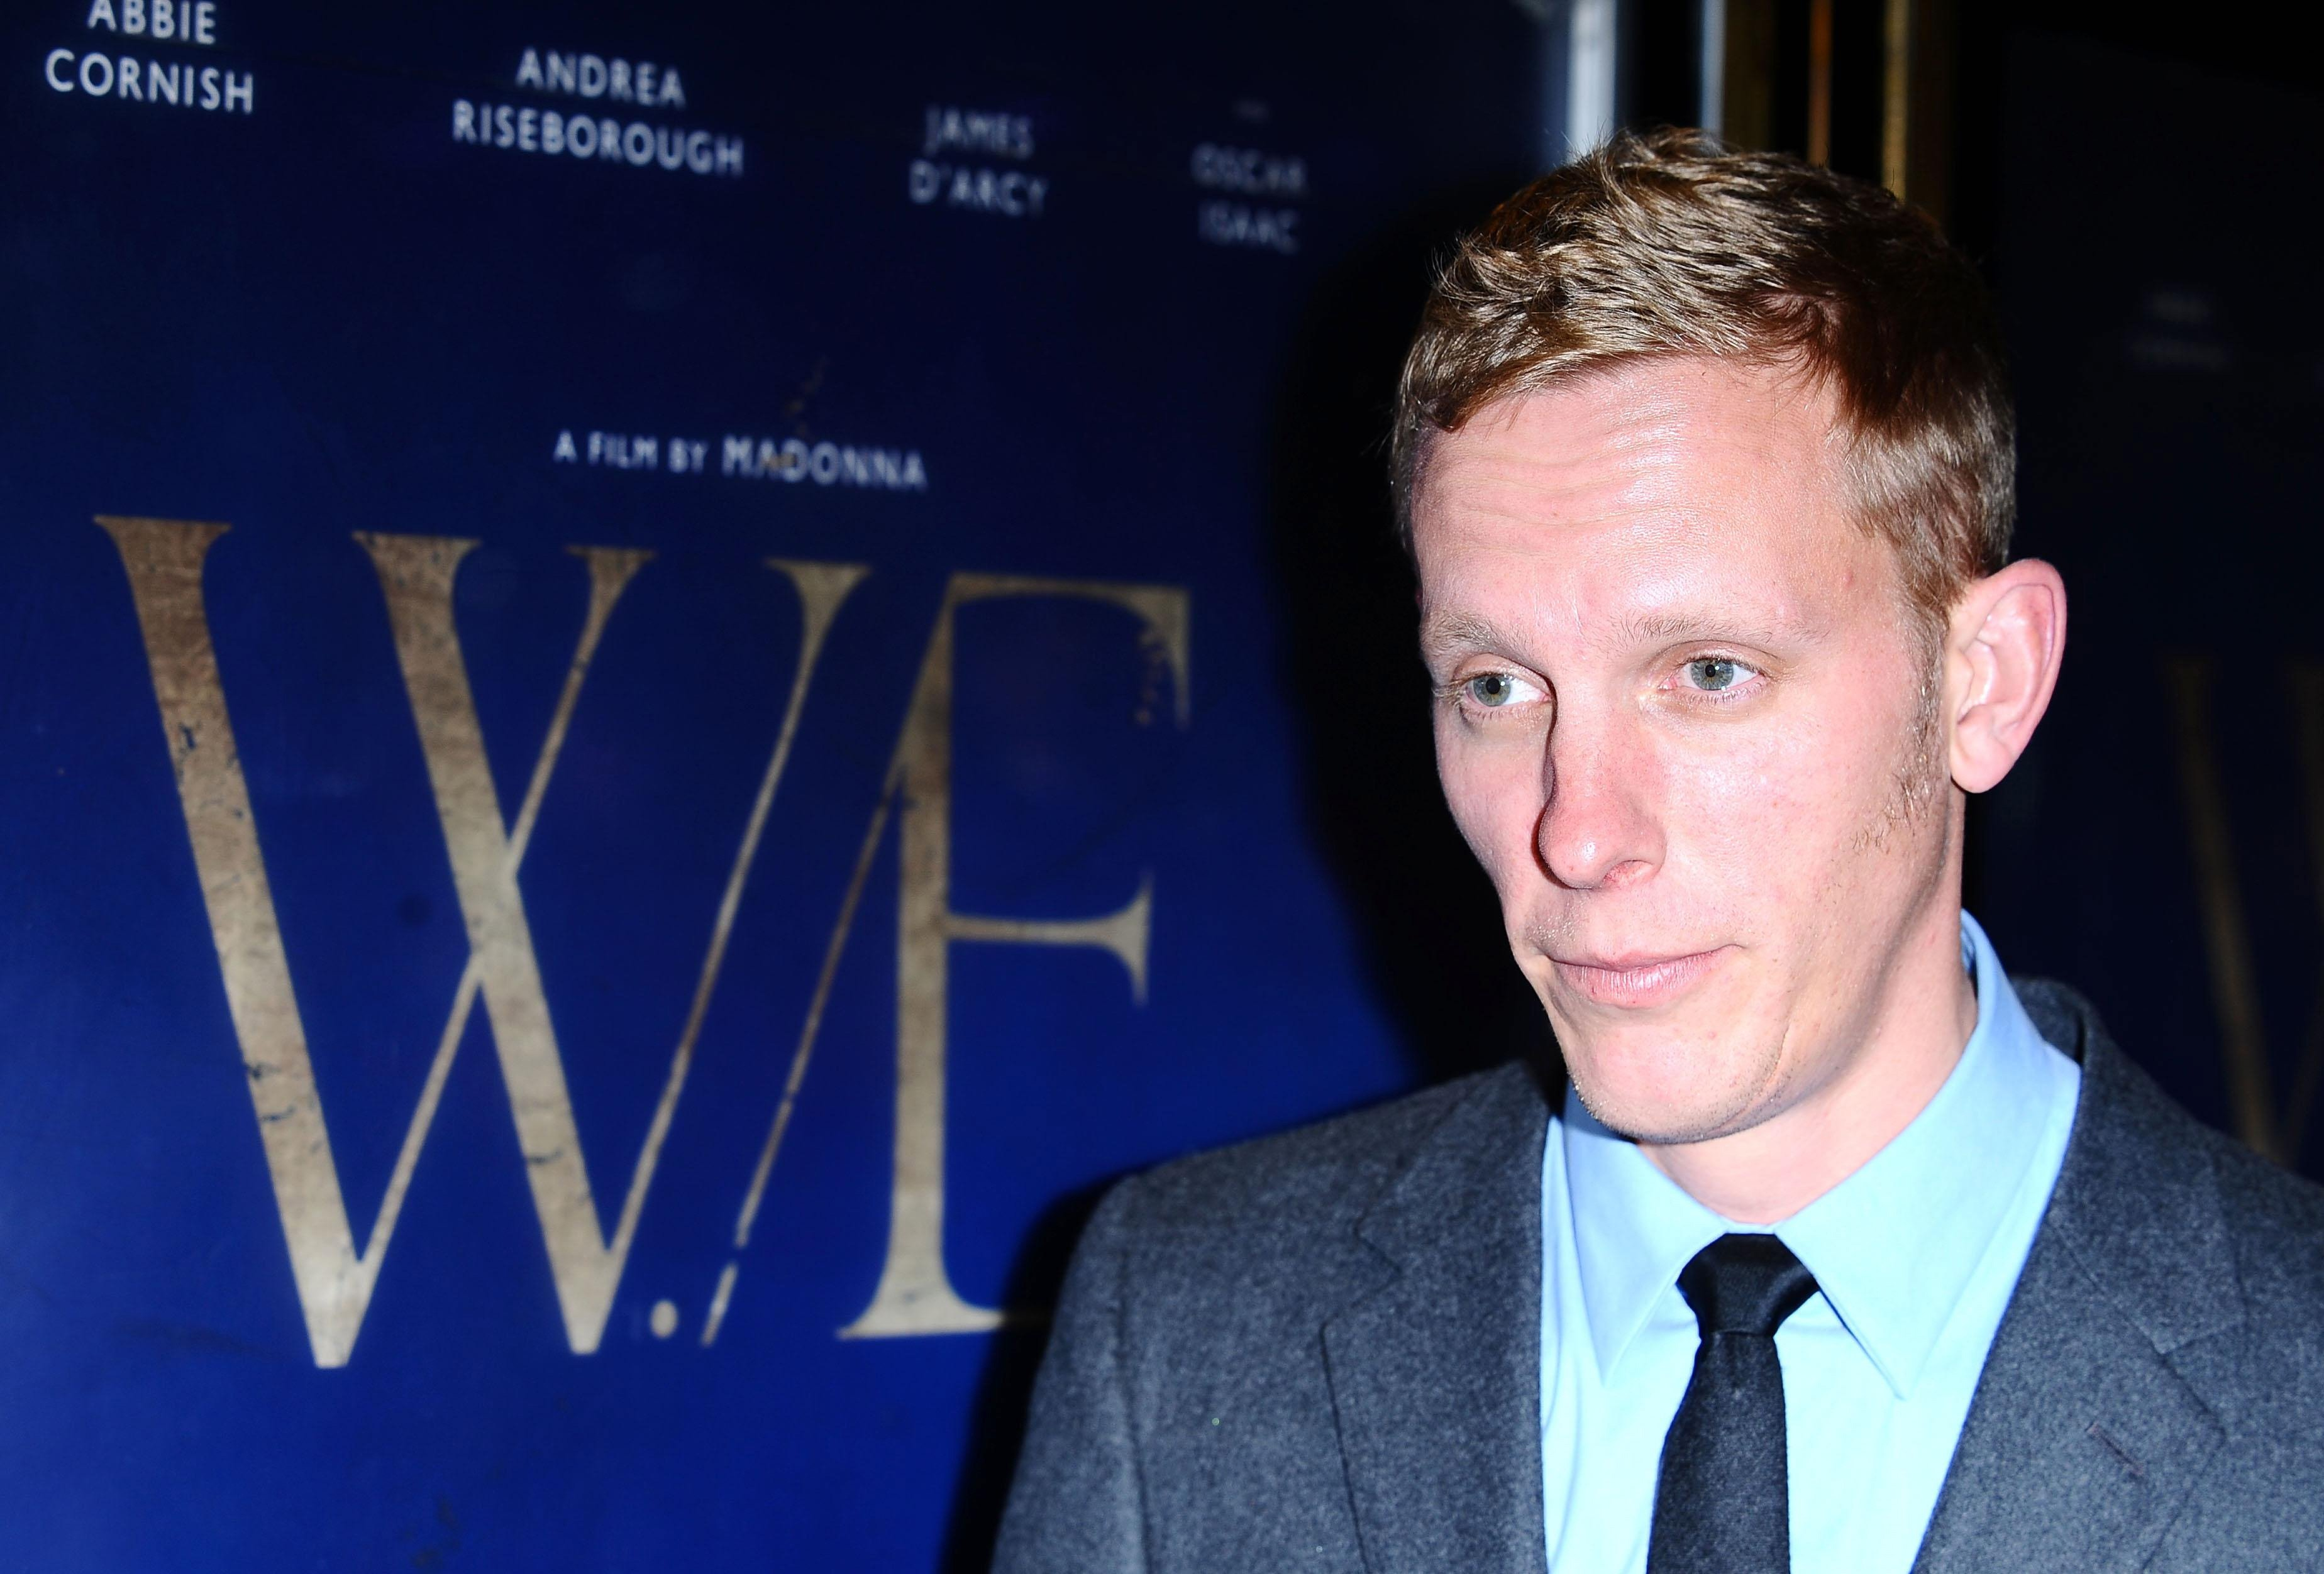 Actor Laurence Fox announces bid to run for Mayor of London vowing to end lockdown straight away